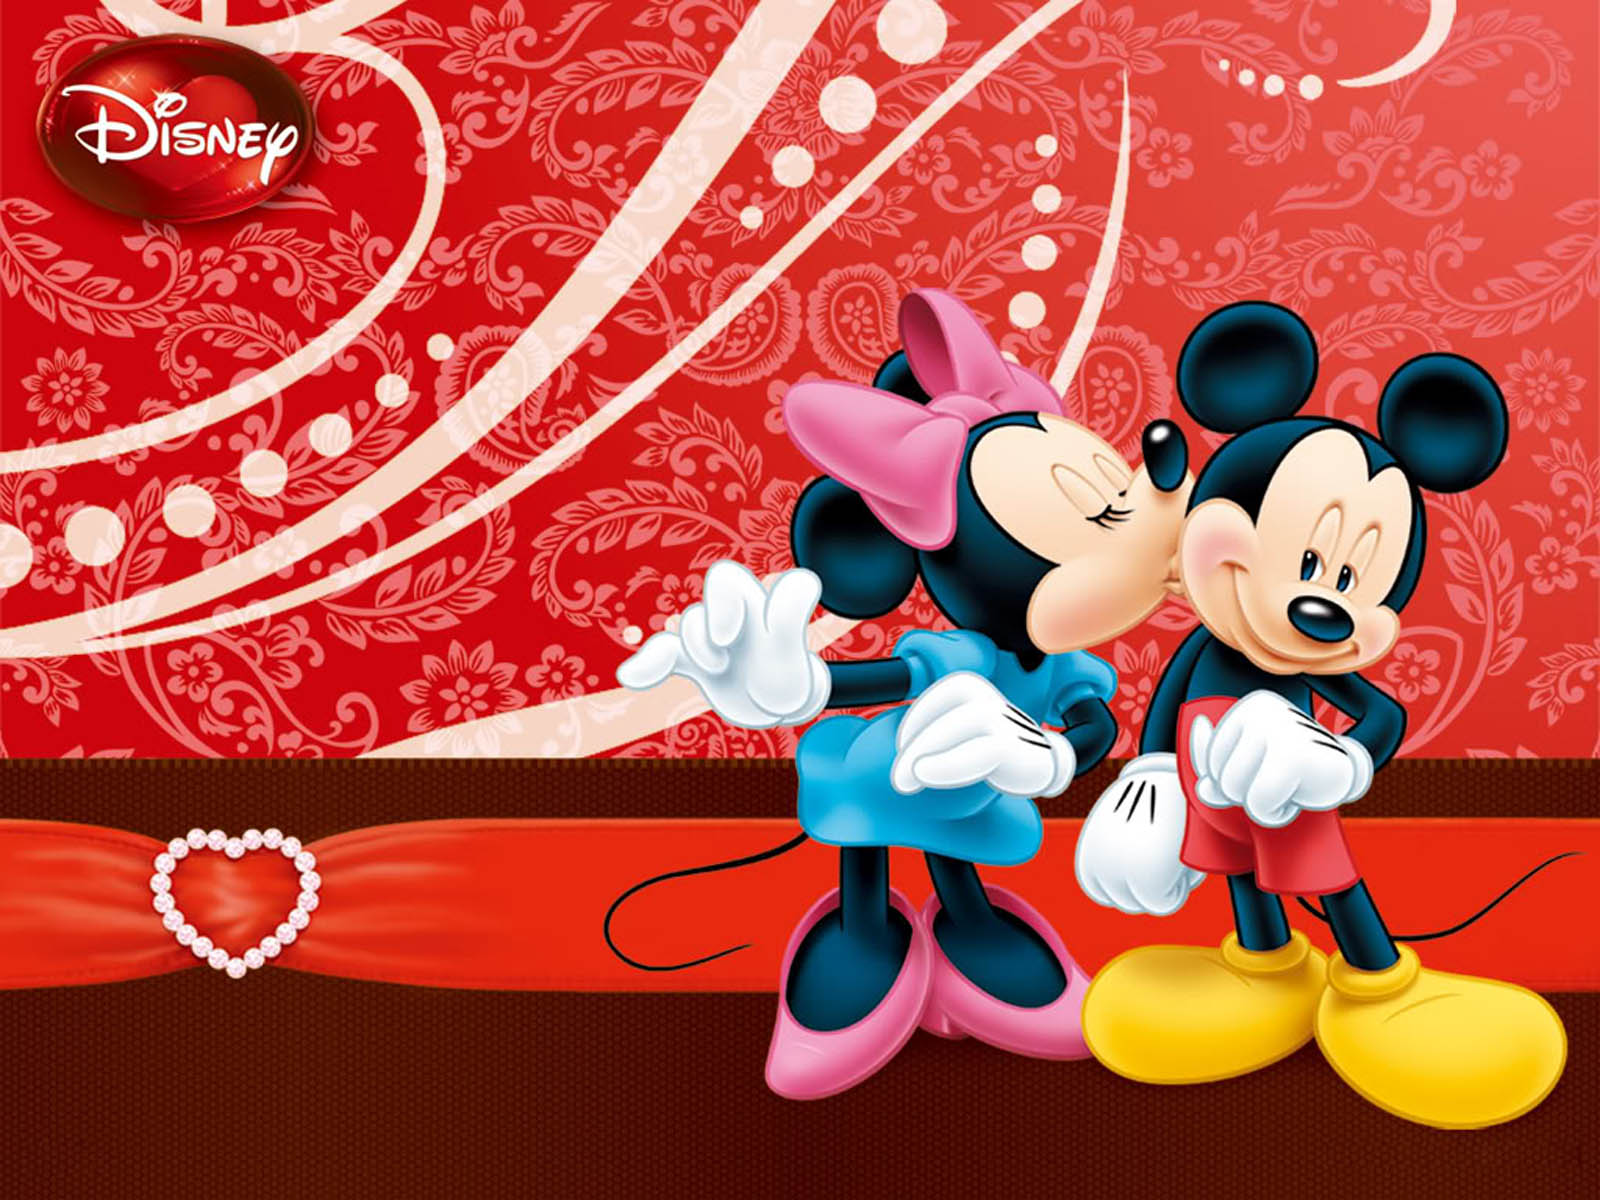 Free Download Mouse Wallpapers Images Photos Pictures And Backgrounds For 1600x1200 For Your Desktop Mobile Tablet Explore 46 Minnie Mouse Desktop Wallpaper Minnie Mouse Wallpapers Mickey And Minnie Desktop